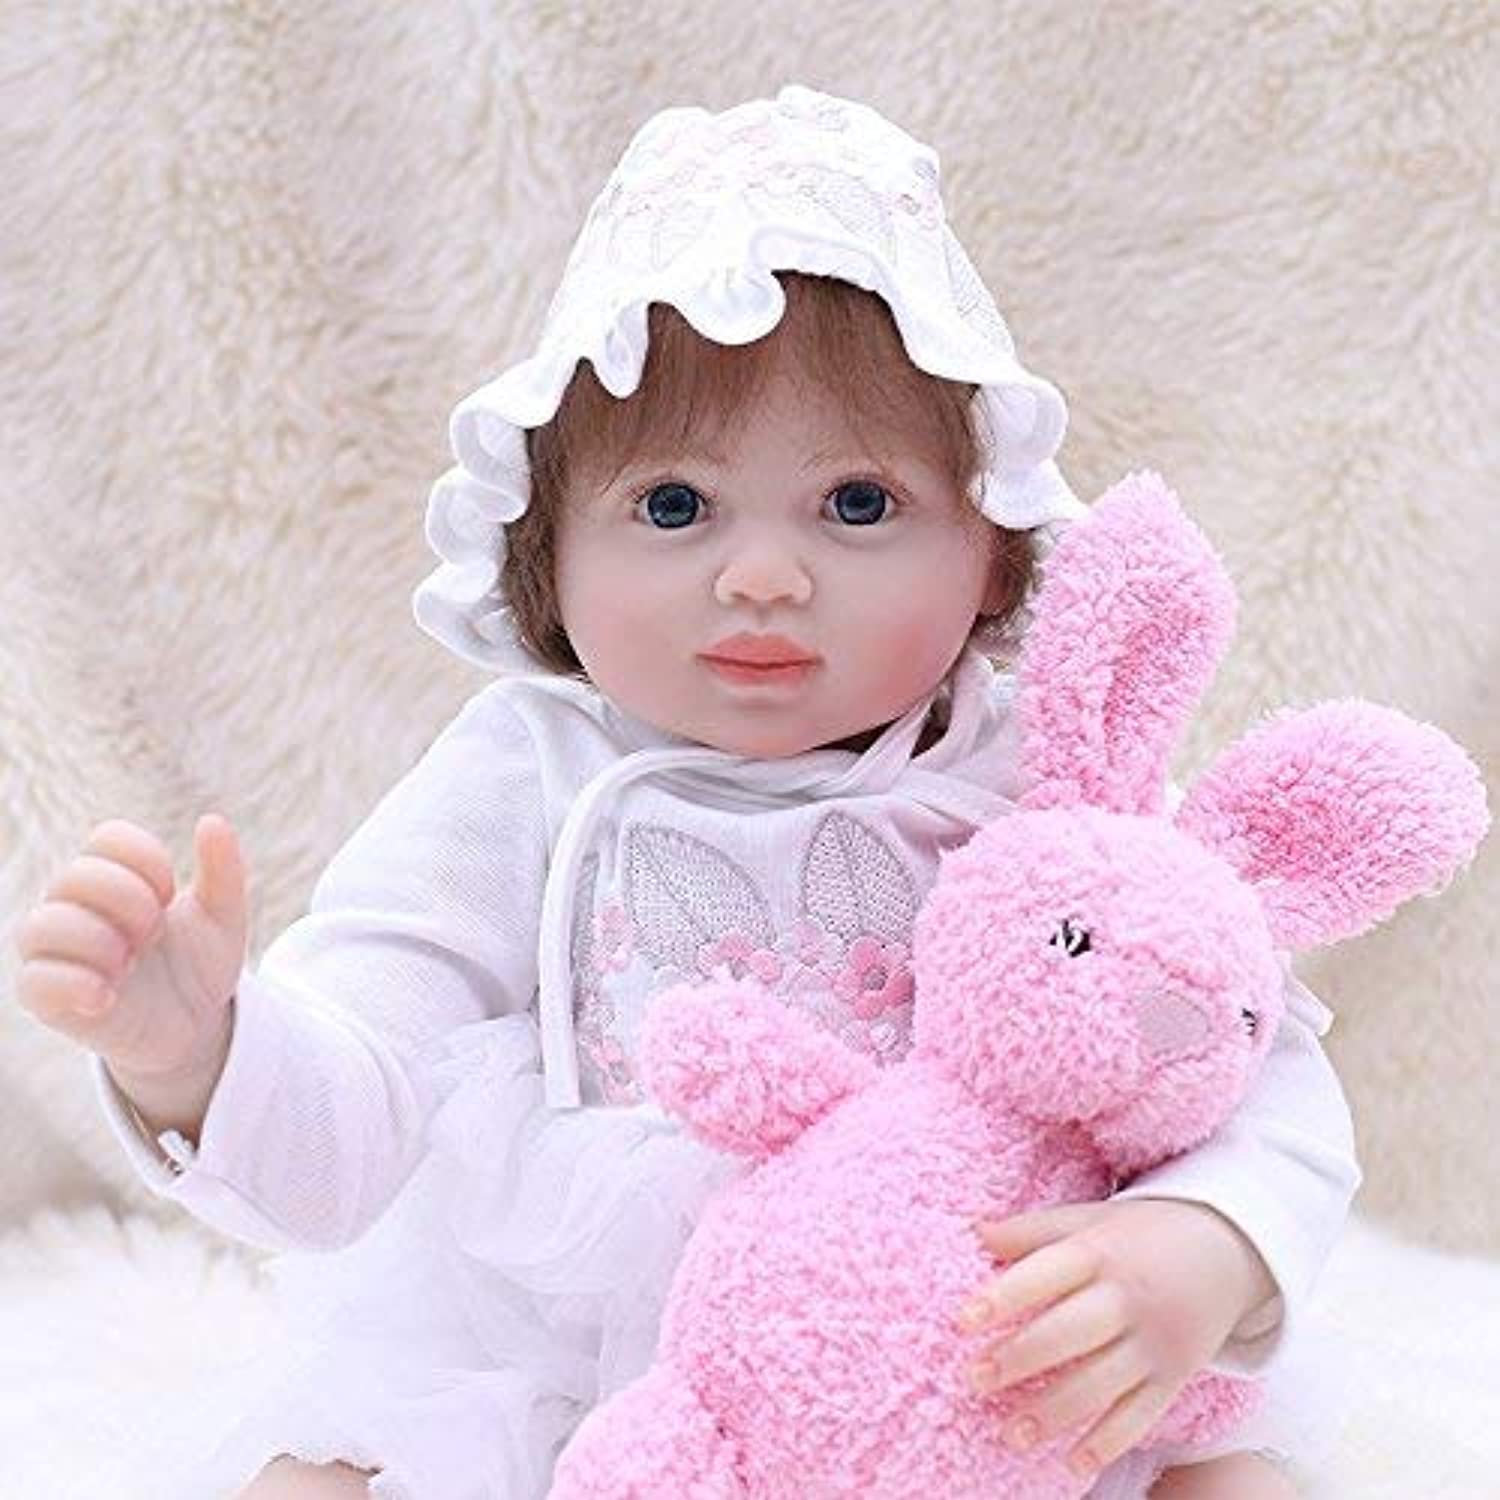 New 18  45 CM Realistic Reborn Baby Dolls Look Real Girl Soft Silicone Vinyl Reborn Toddler Baby Doll Realistic Real Lifelike Looking Newborn Dolls Baby Girl Toy Best Xmas Gift With Pink Rabbit